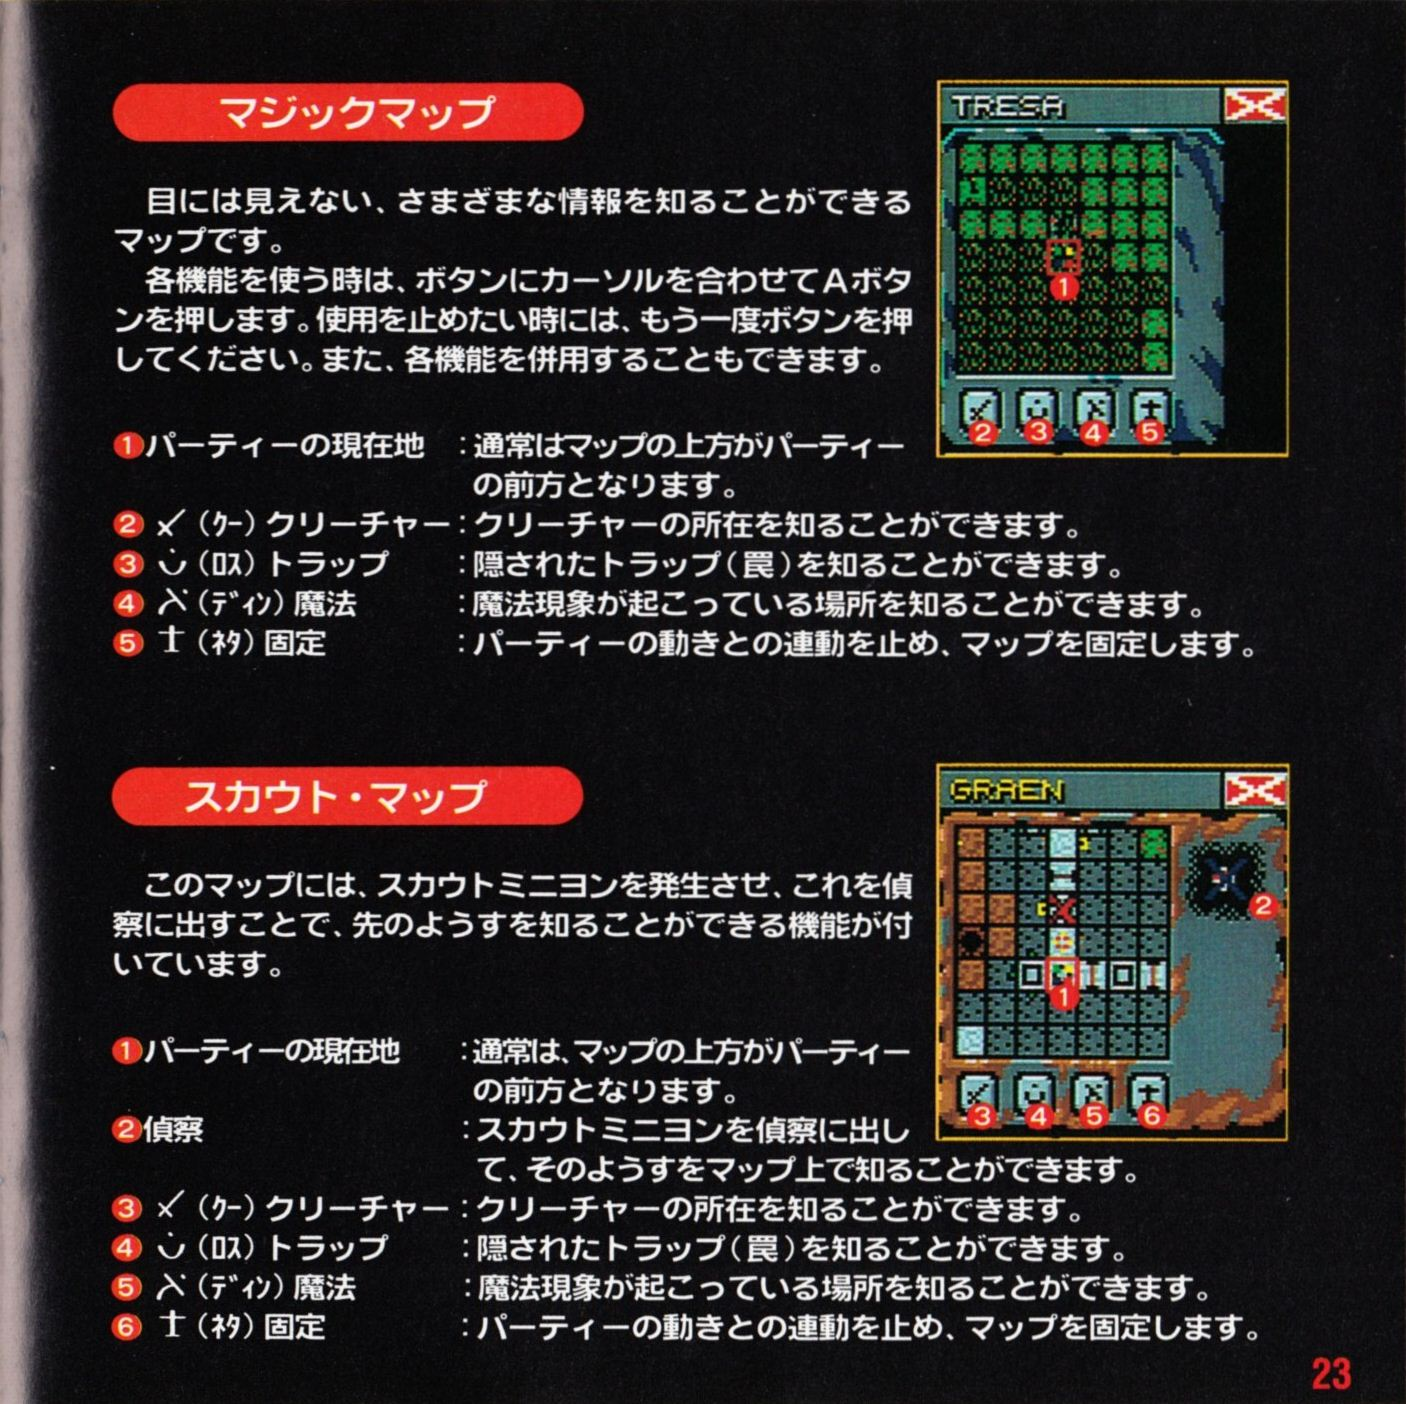 Game - Dungeon Master II - JP - Mega CD - Booklet - Page 025 - Scan